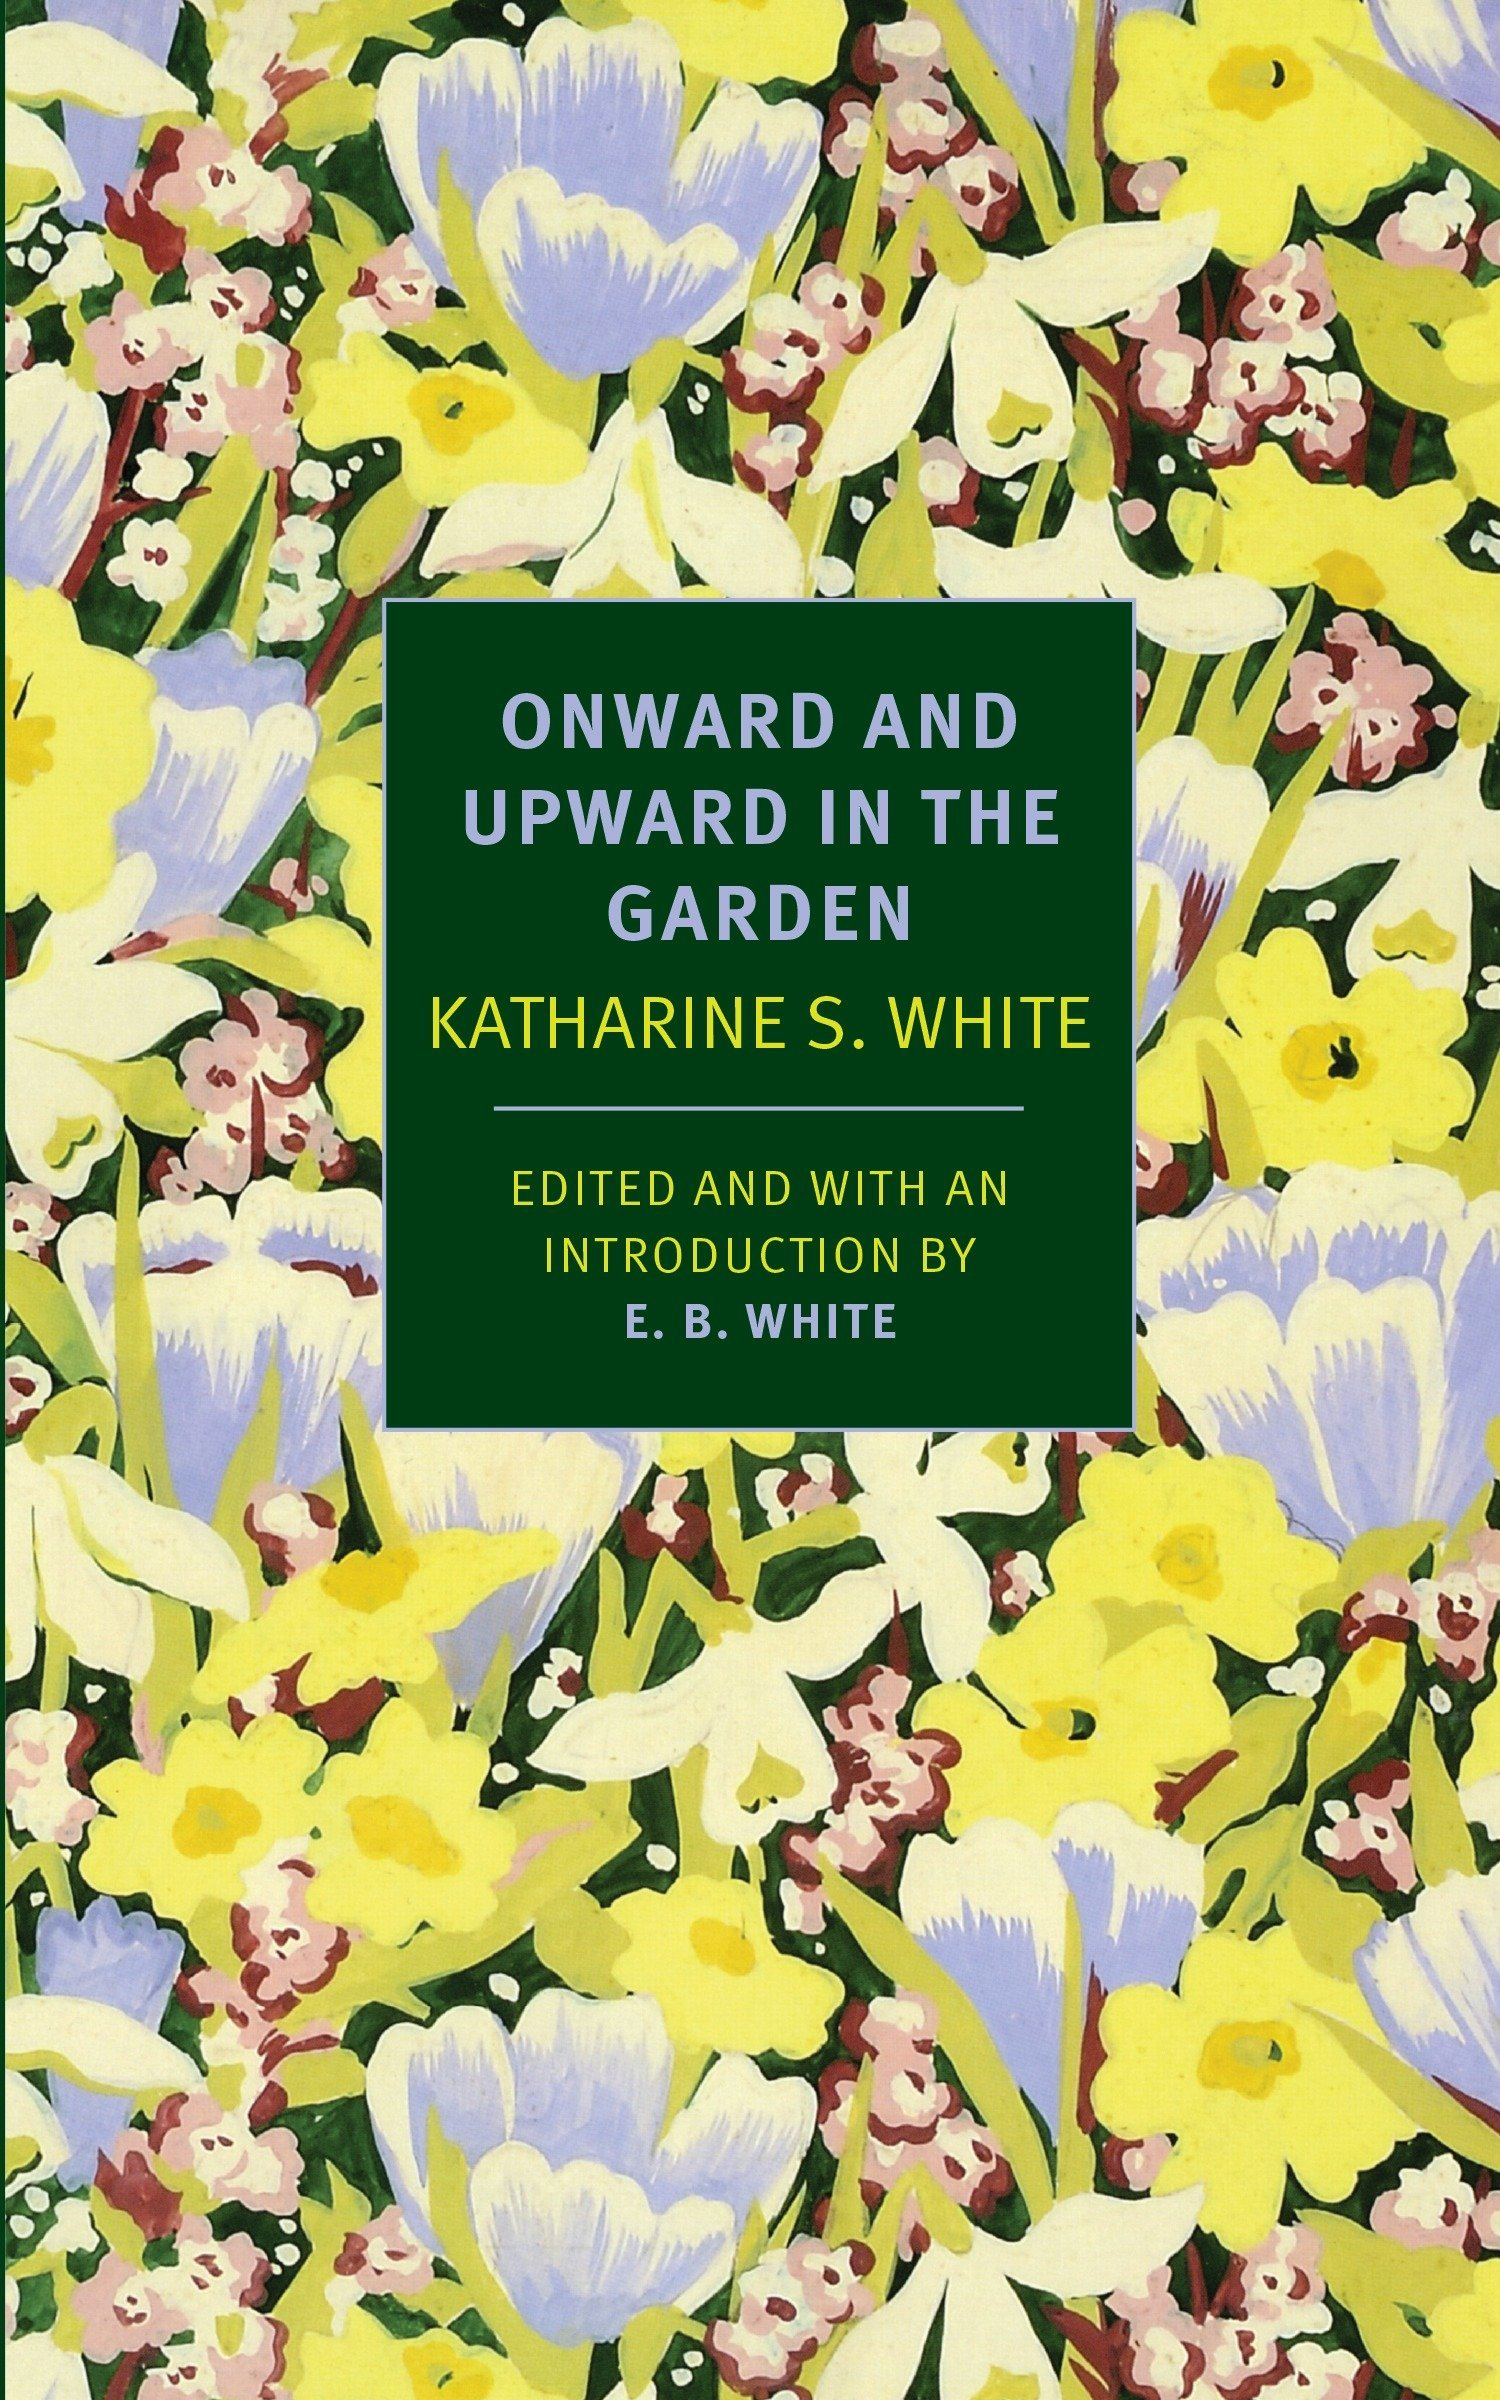 Onward and Upward in the Garden (New York Review Books Classics) Paperback – March 17, 2015 Katherine S. White E. B. White NYRB Classics 1590178505